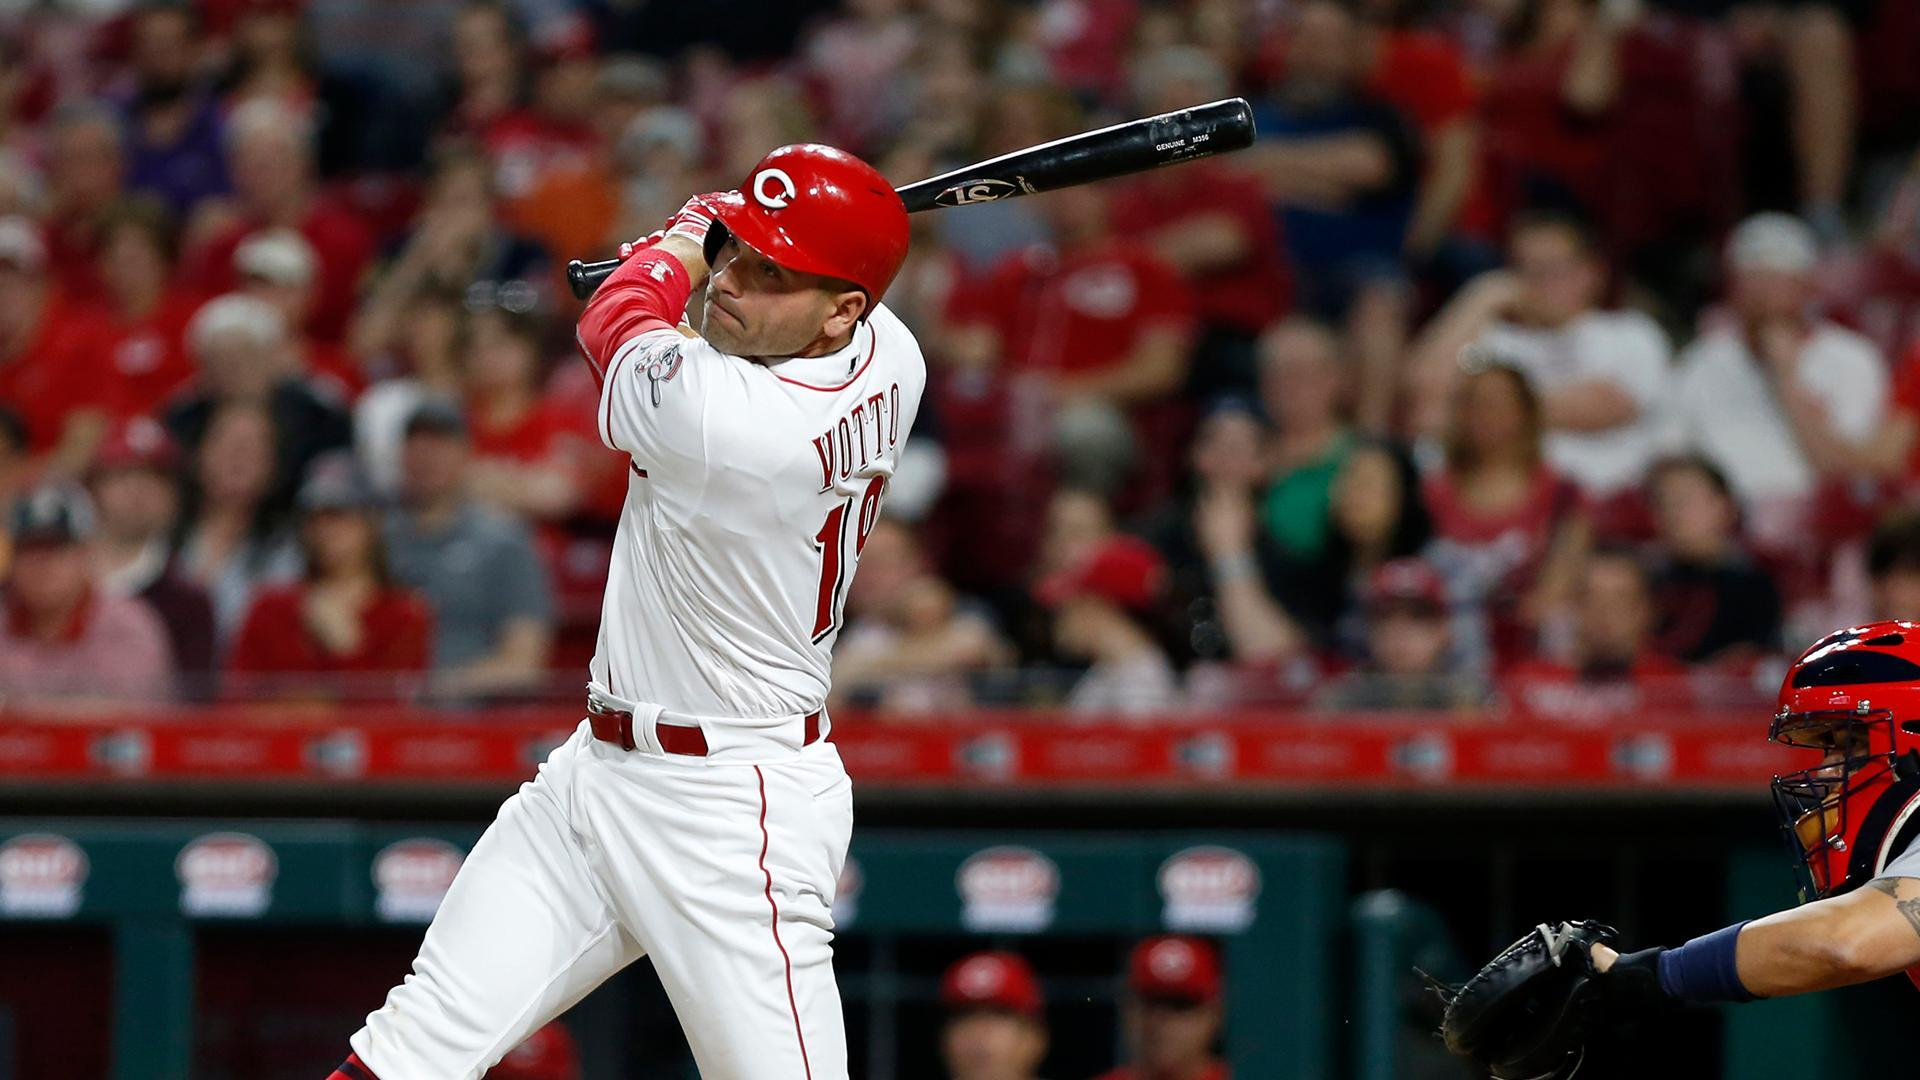 DKTV Joey Votto's monster April performance